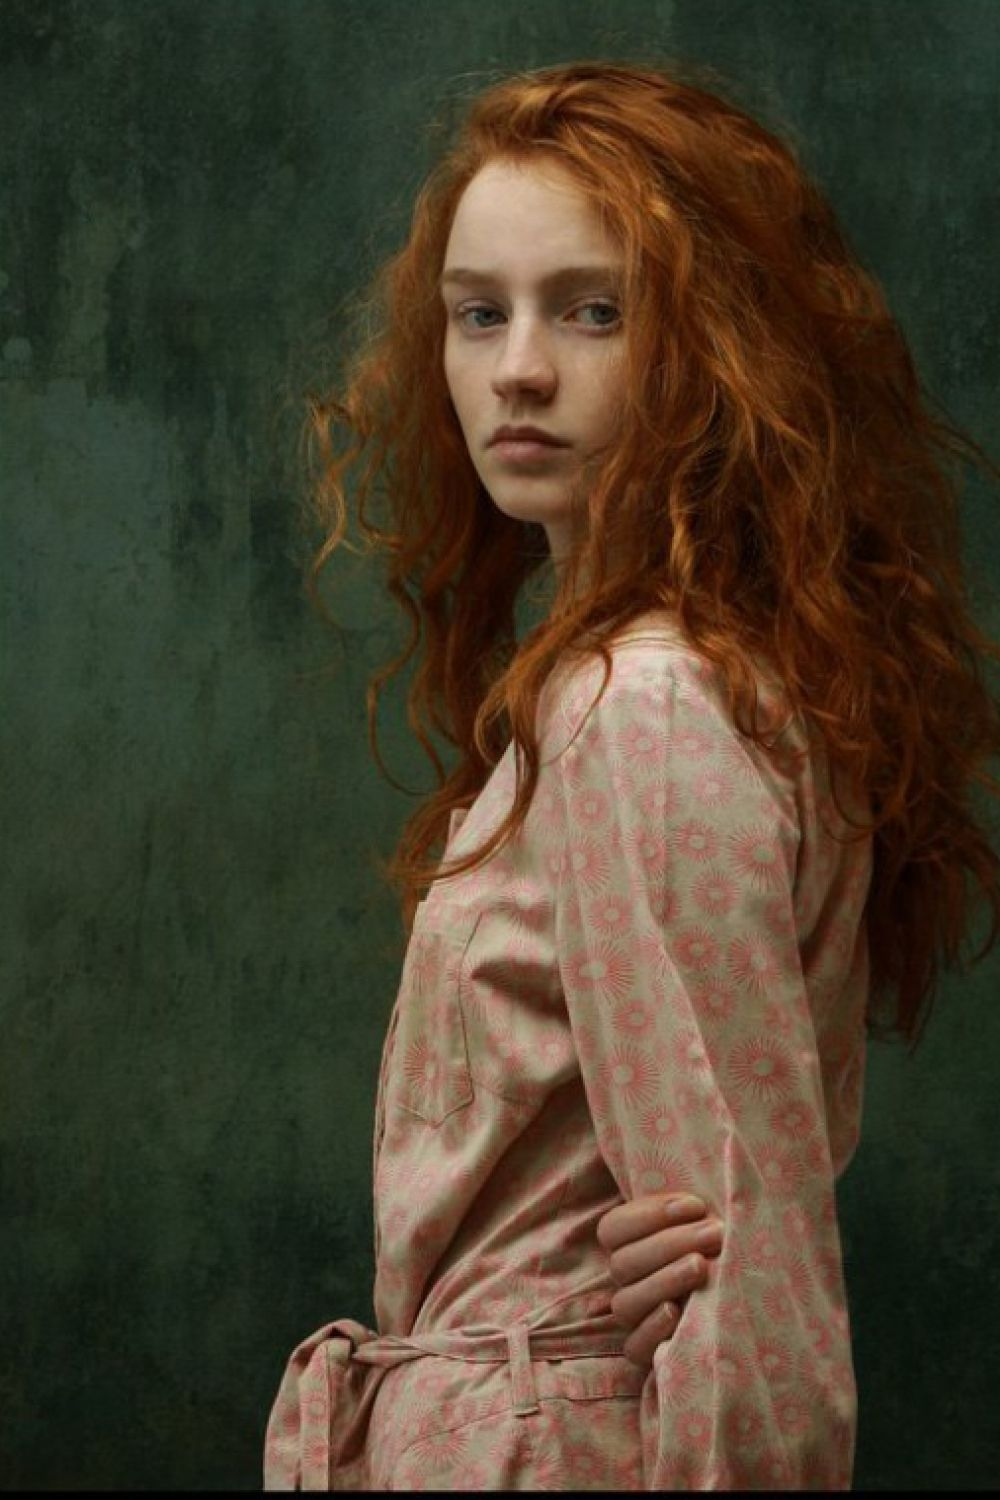 Theme, painting of red headed woman